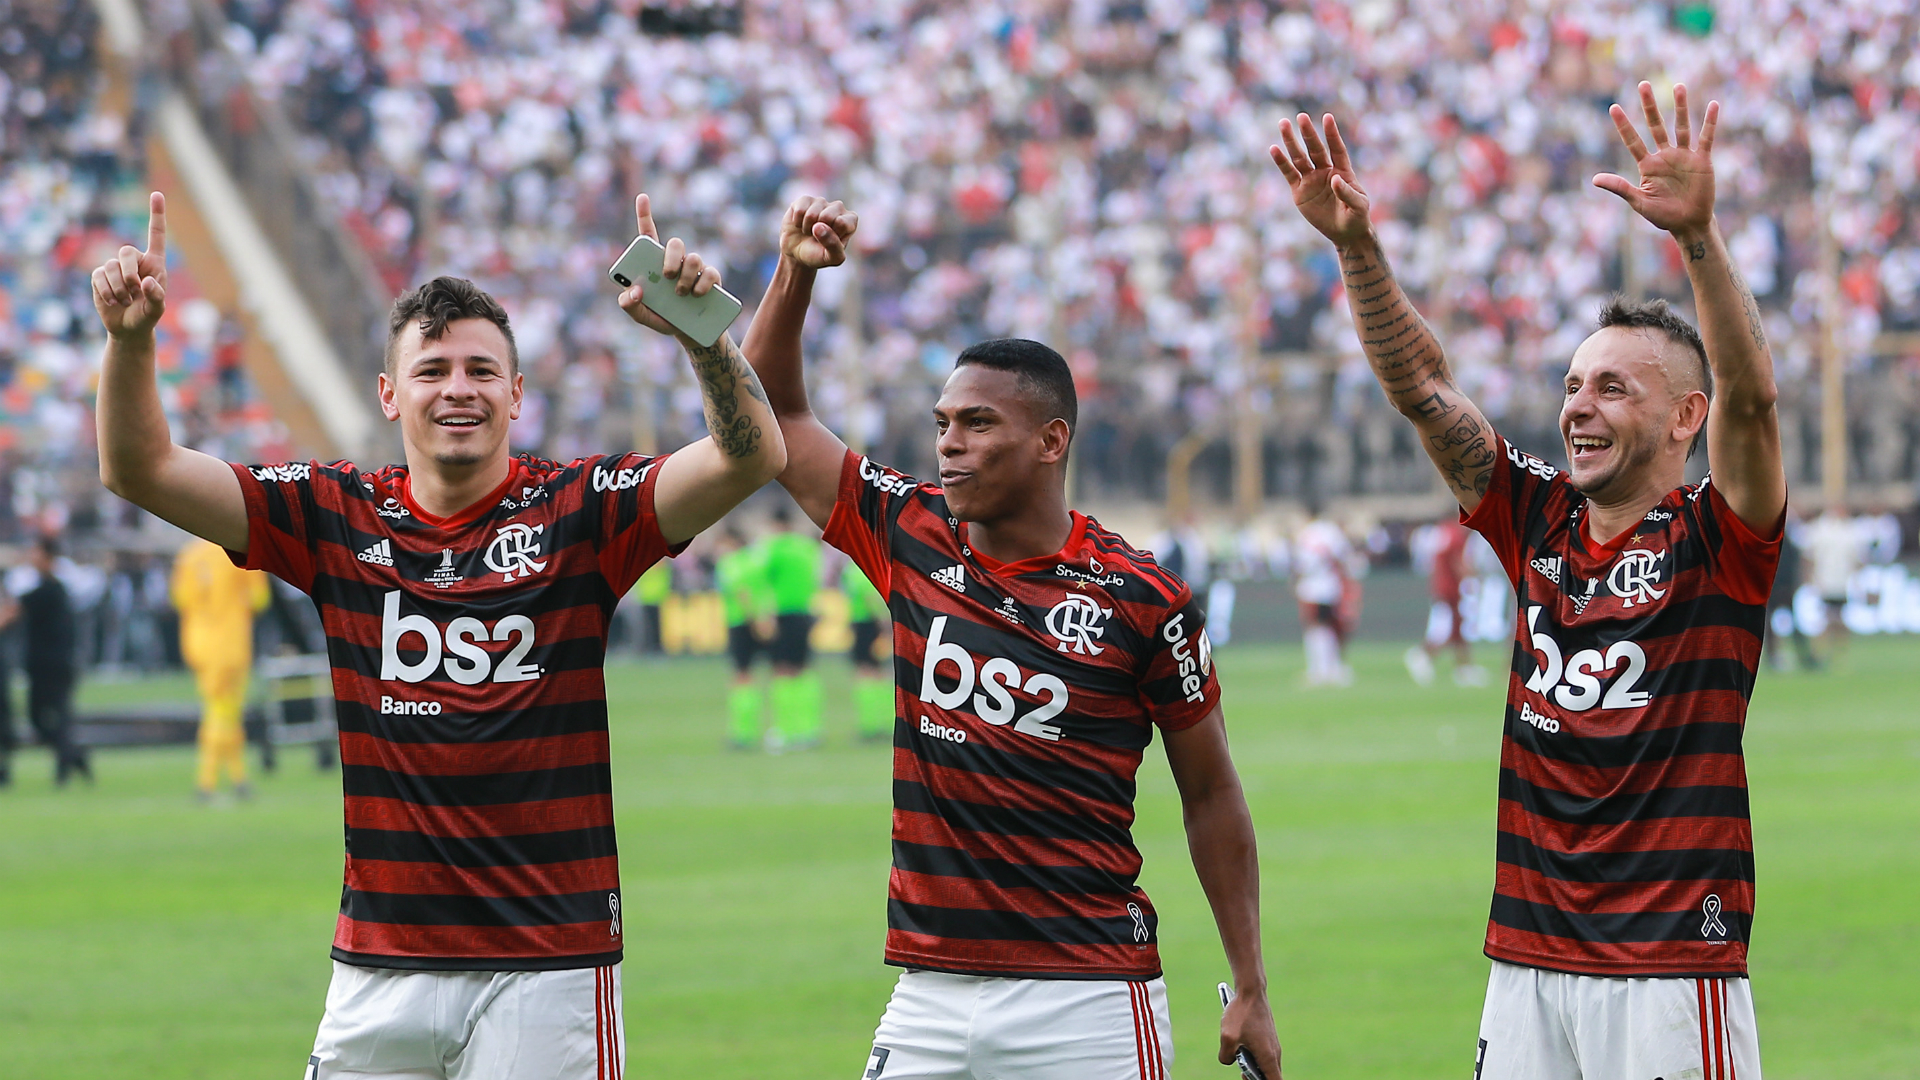 Copa Libertadores kings Flamengo add league title to complete historic double